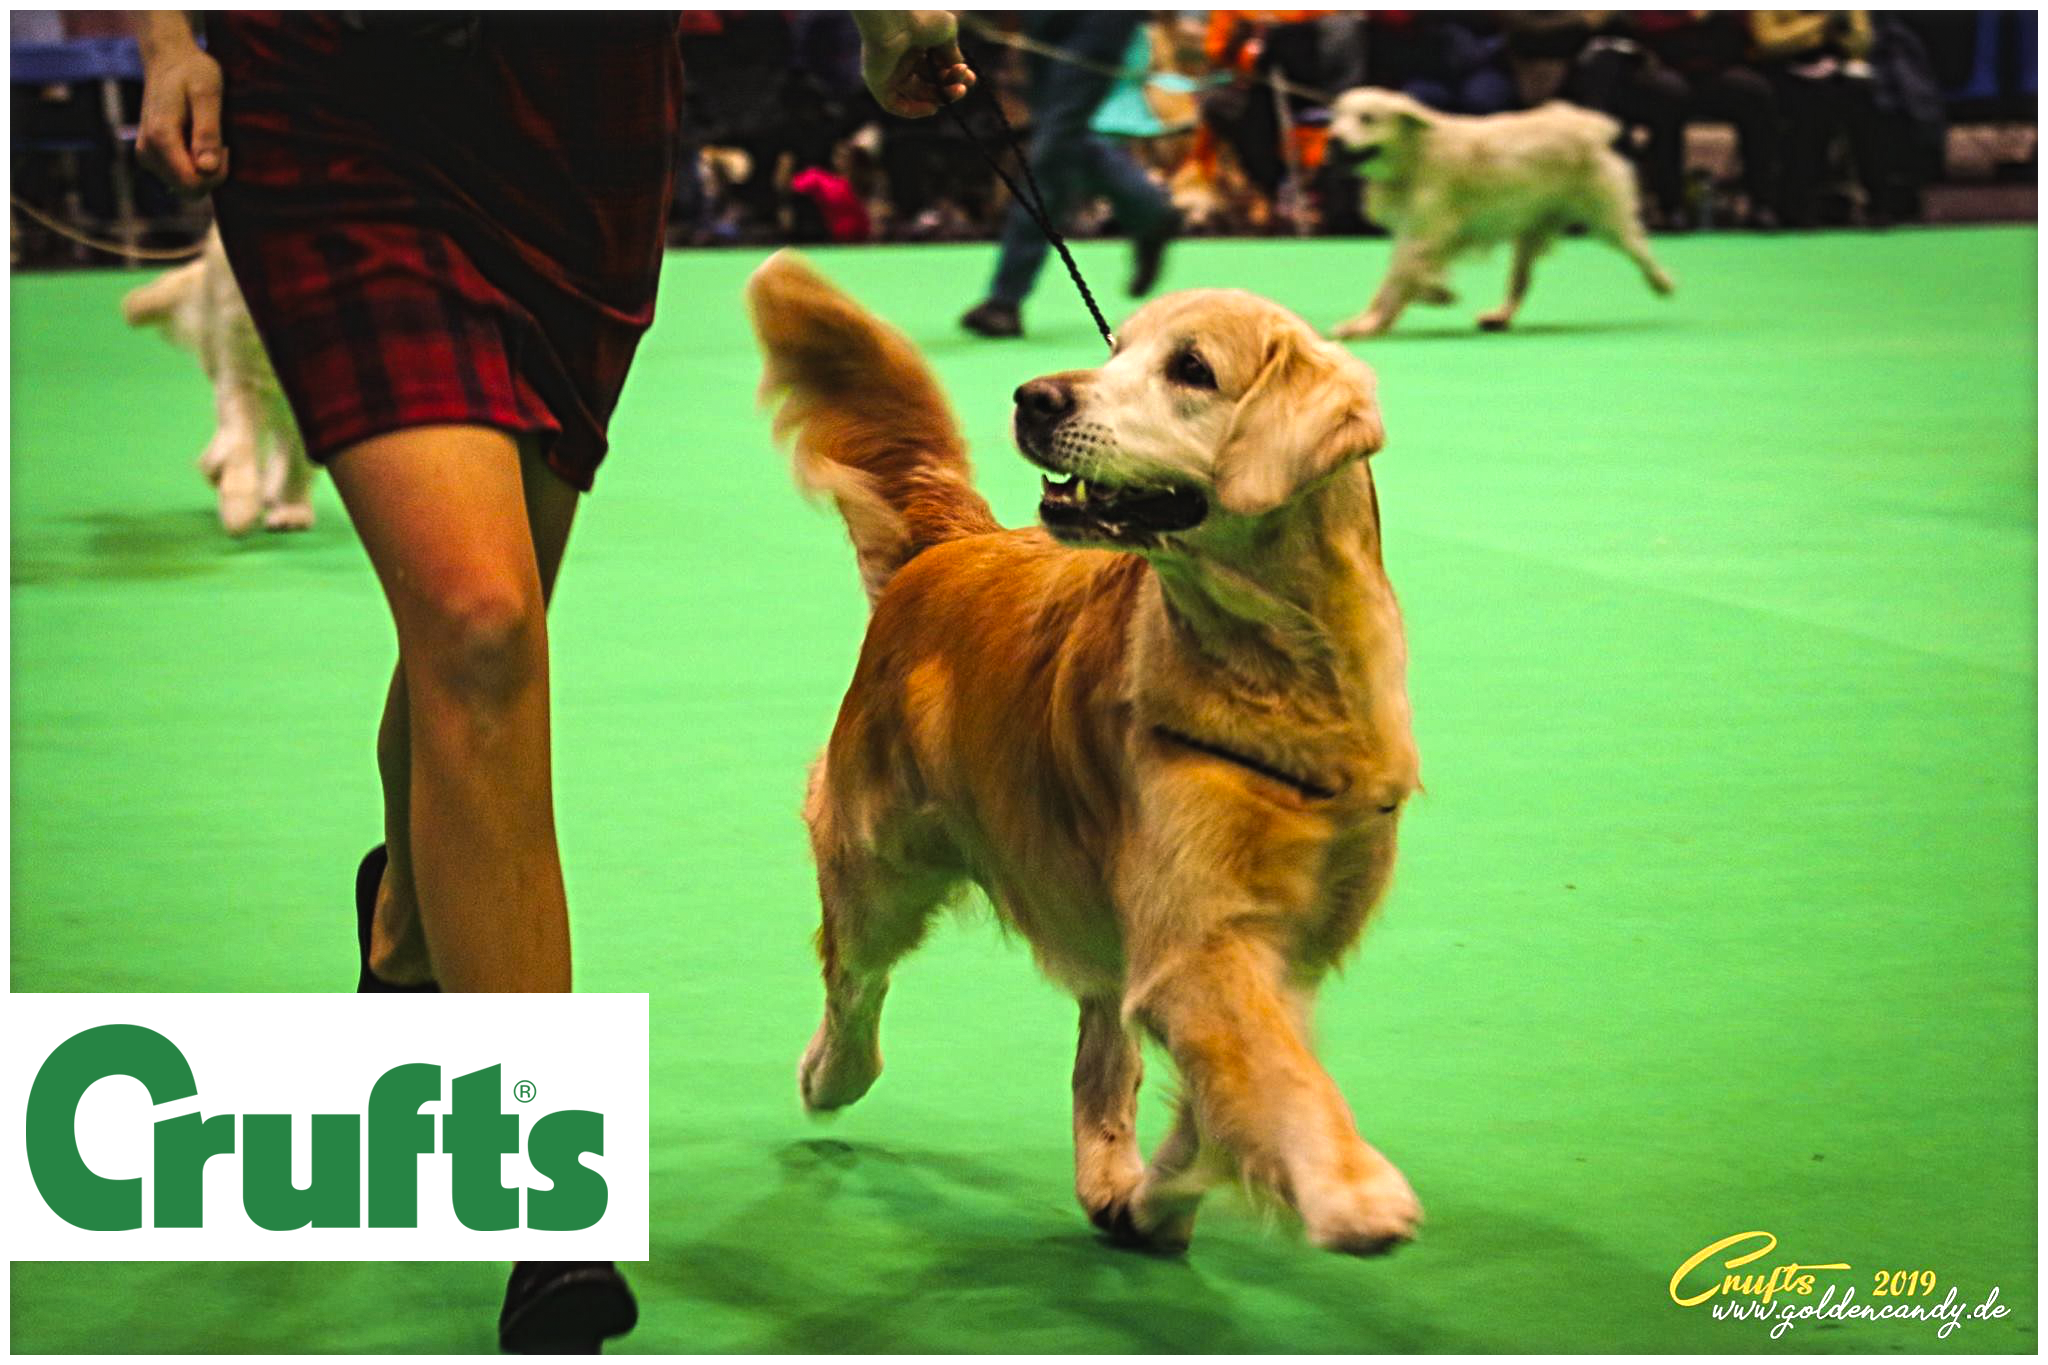 Crufts 2019 Golden Retriever